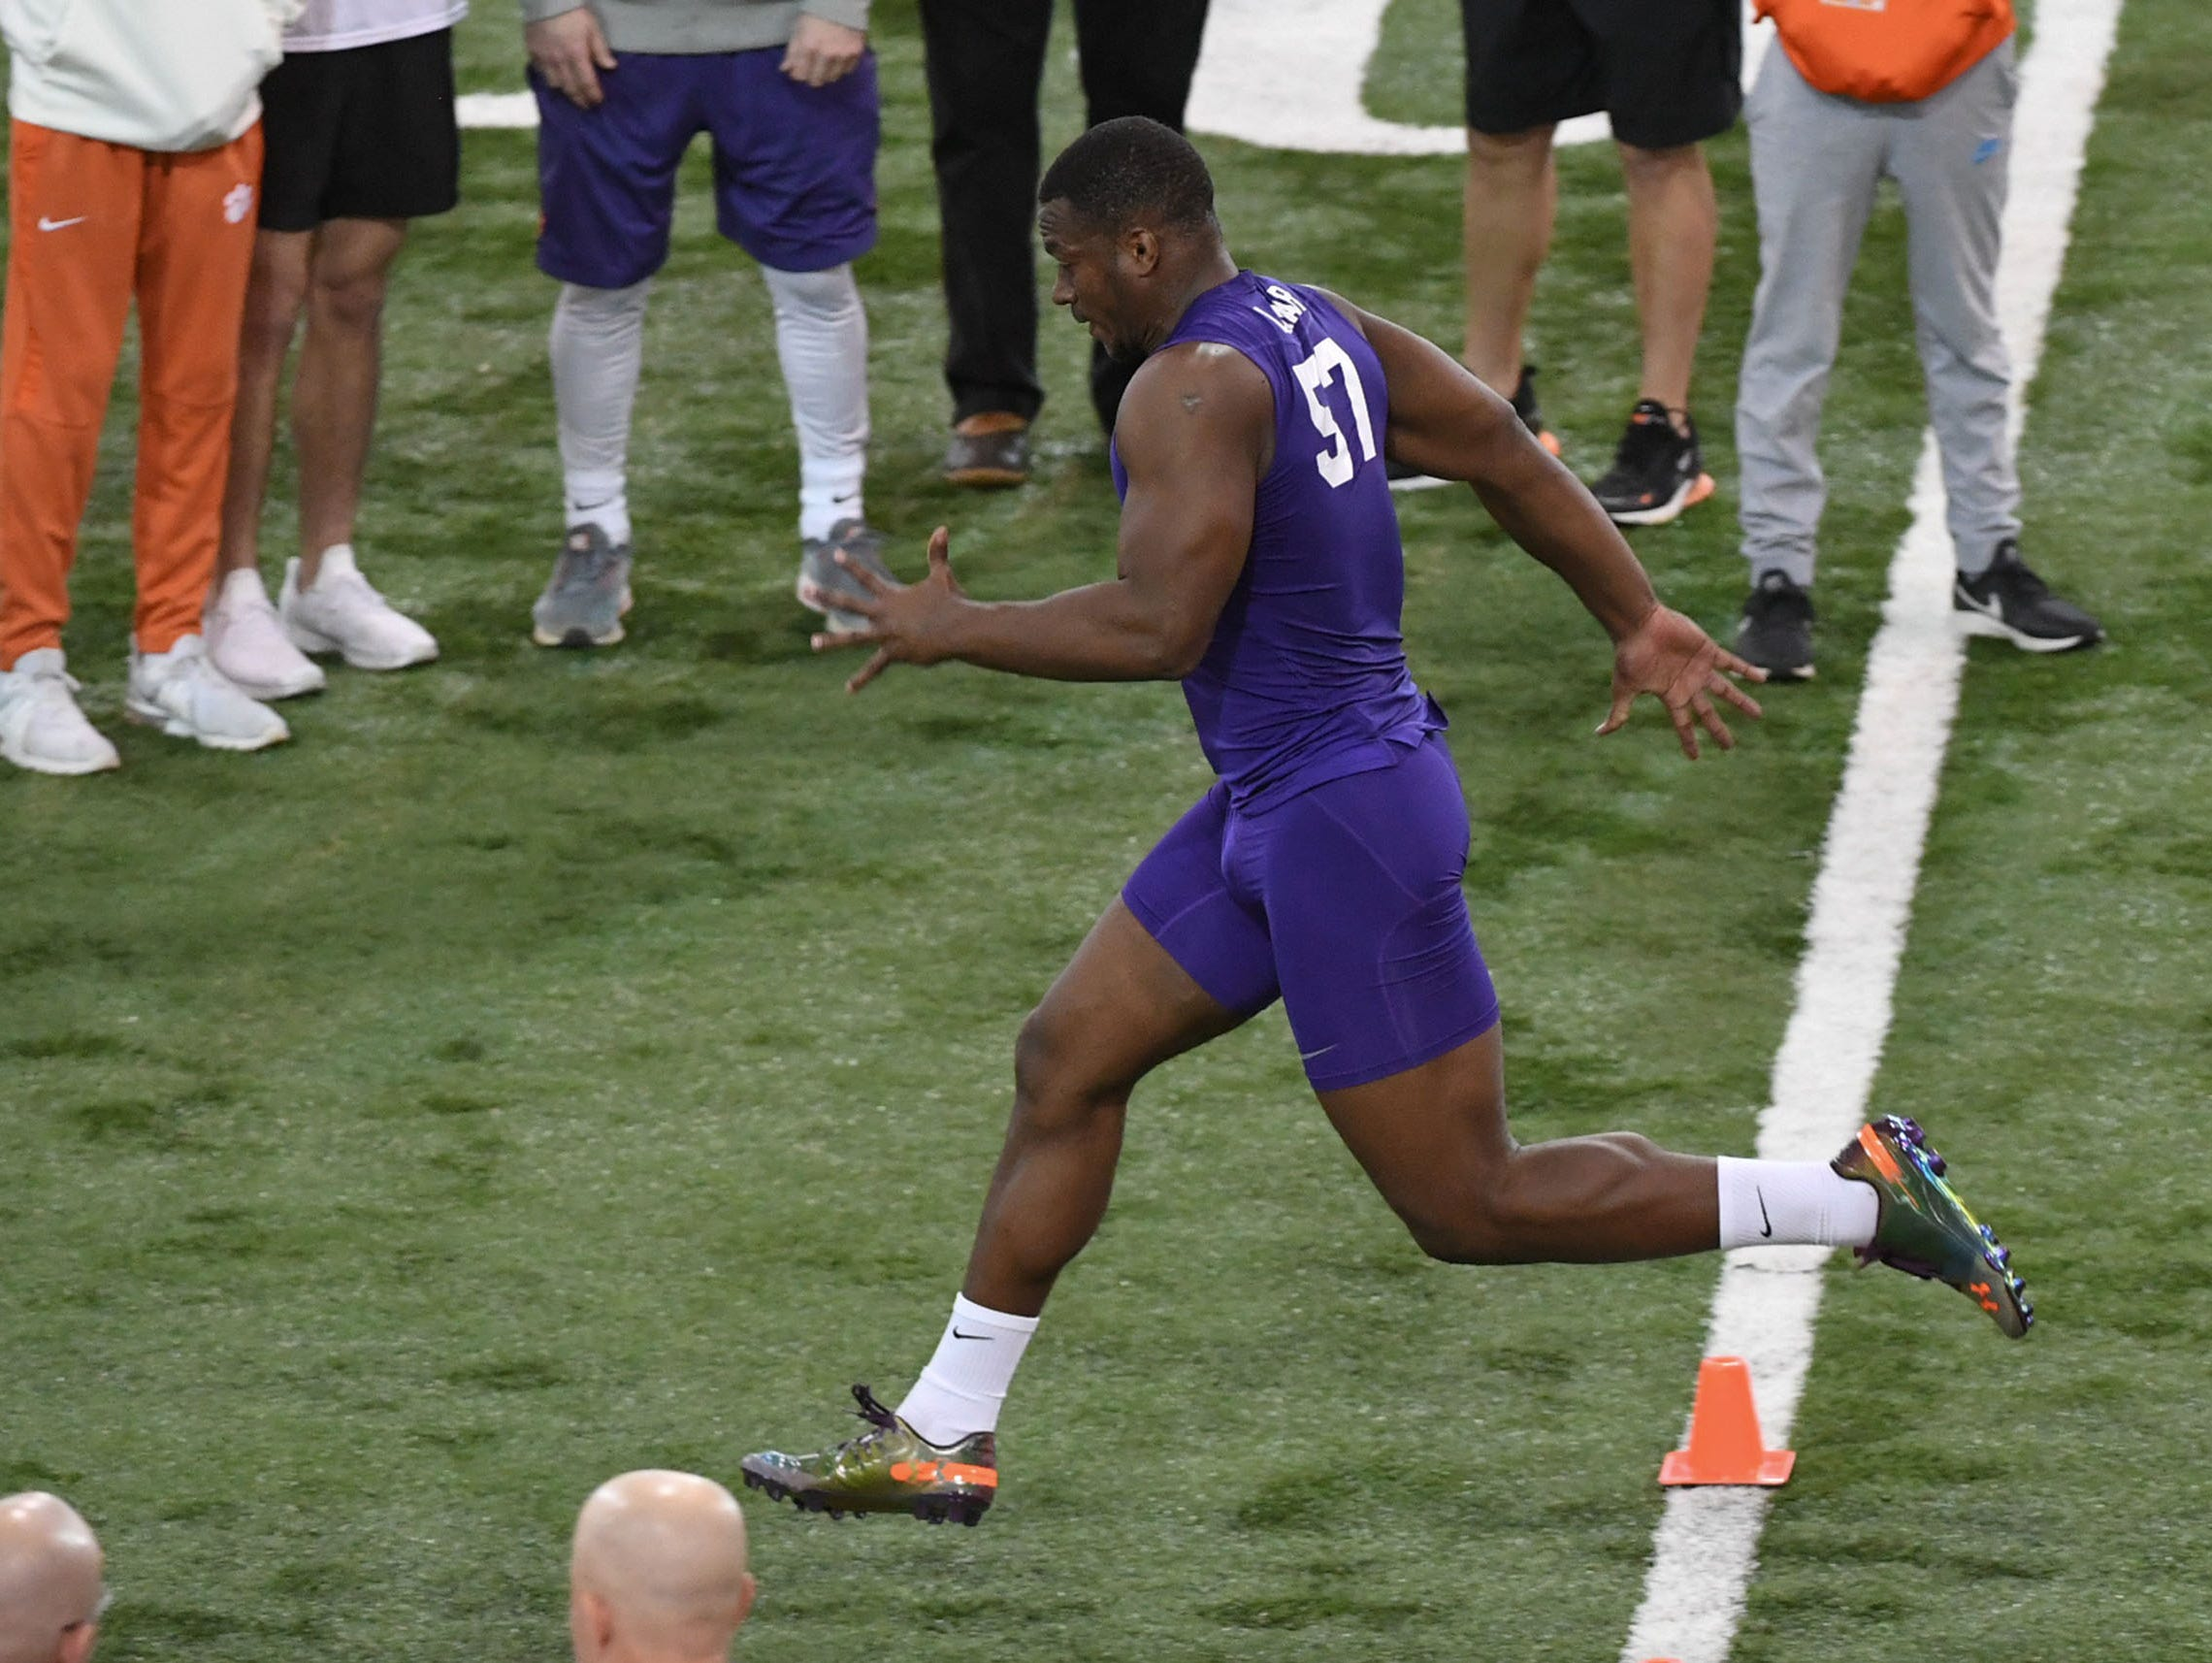 Former Clemson linebacker Tre Lamar III runs a 4.95 40-yard dash during Clemson Pro Day at the Poe Indoor Facility in Clemson, S.C. Thursday, March 14, 2019.